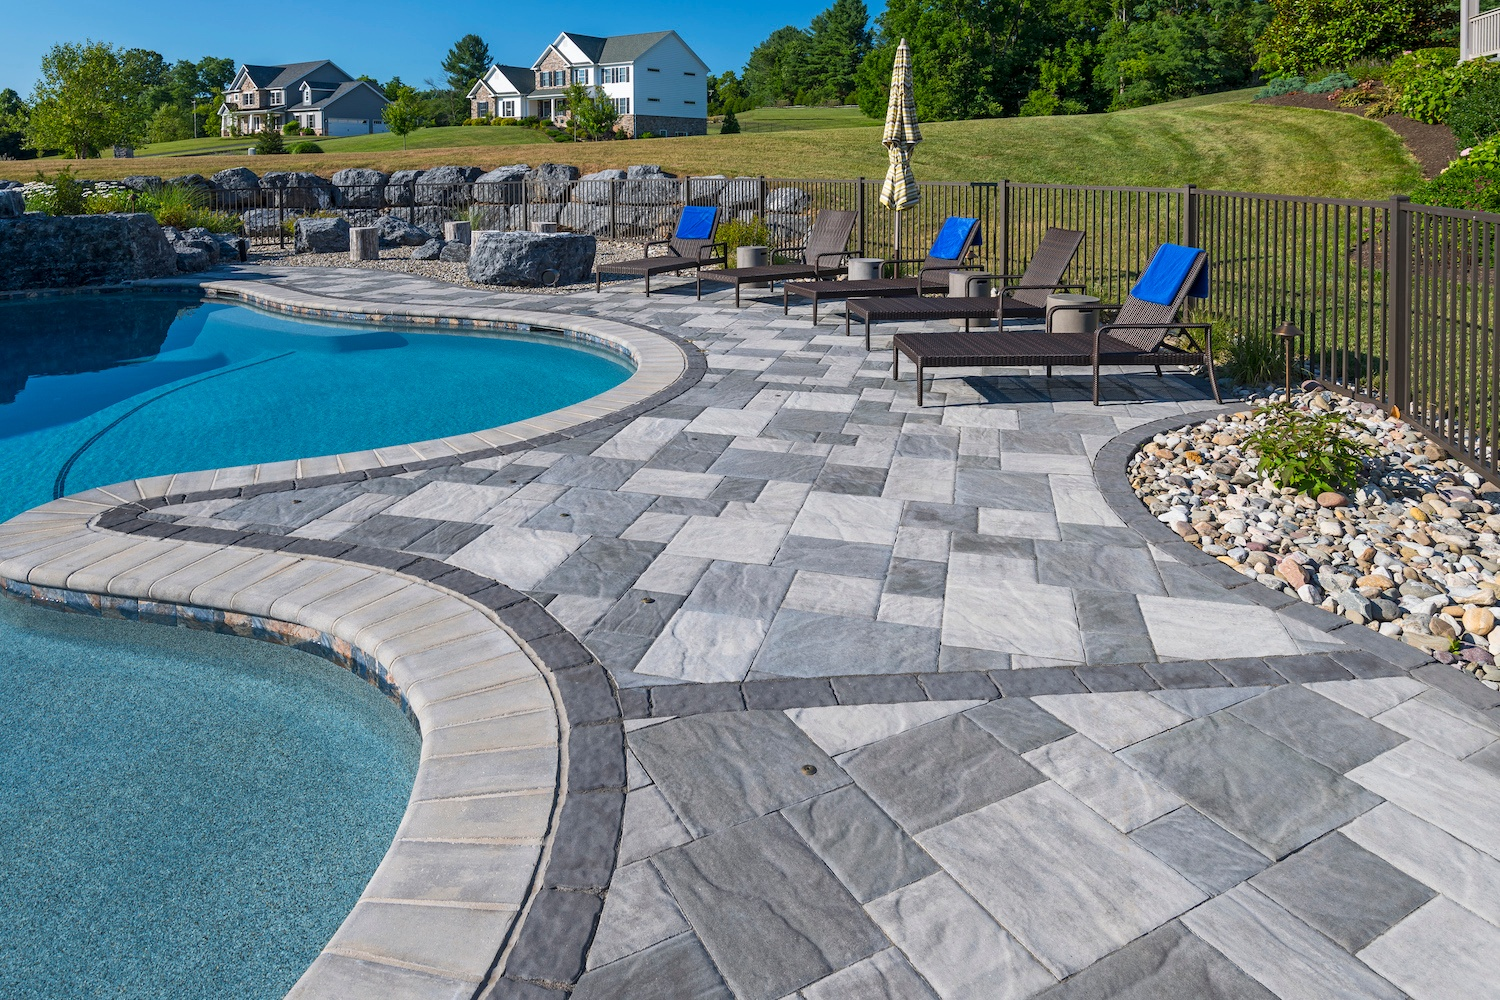 Pool patio with pavers and boulders